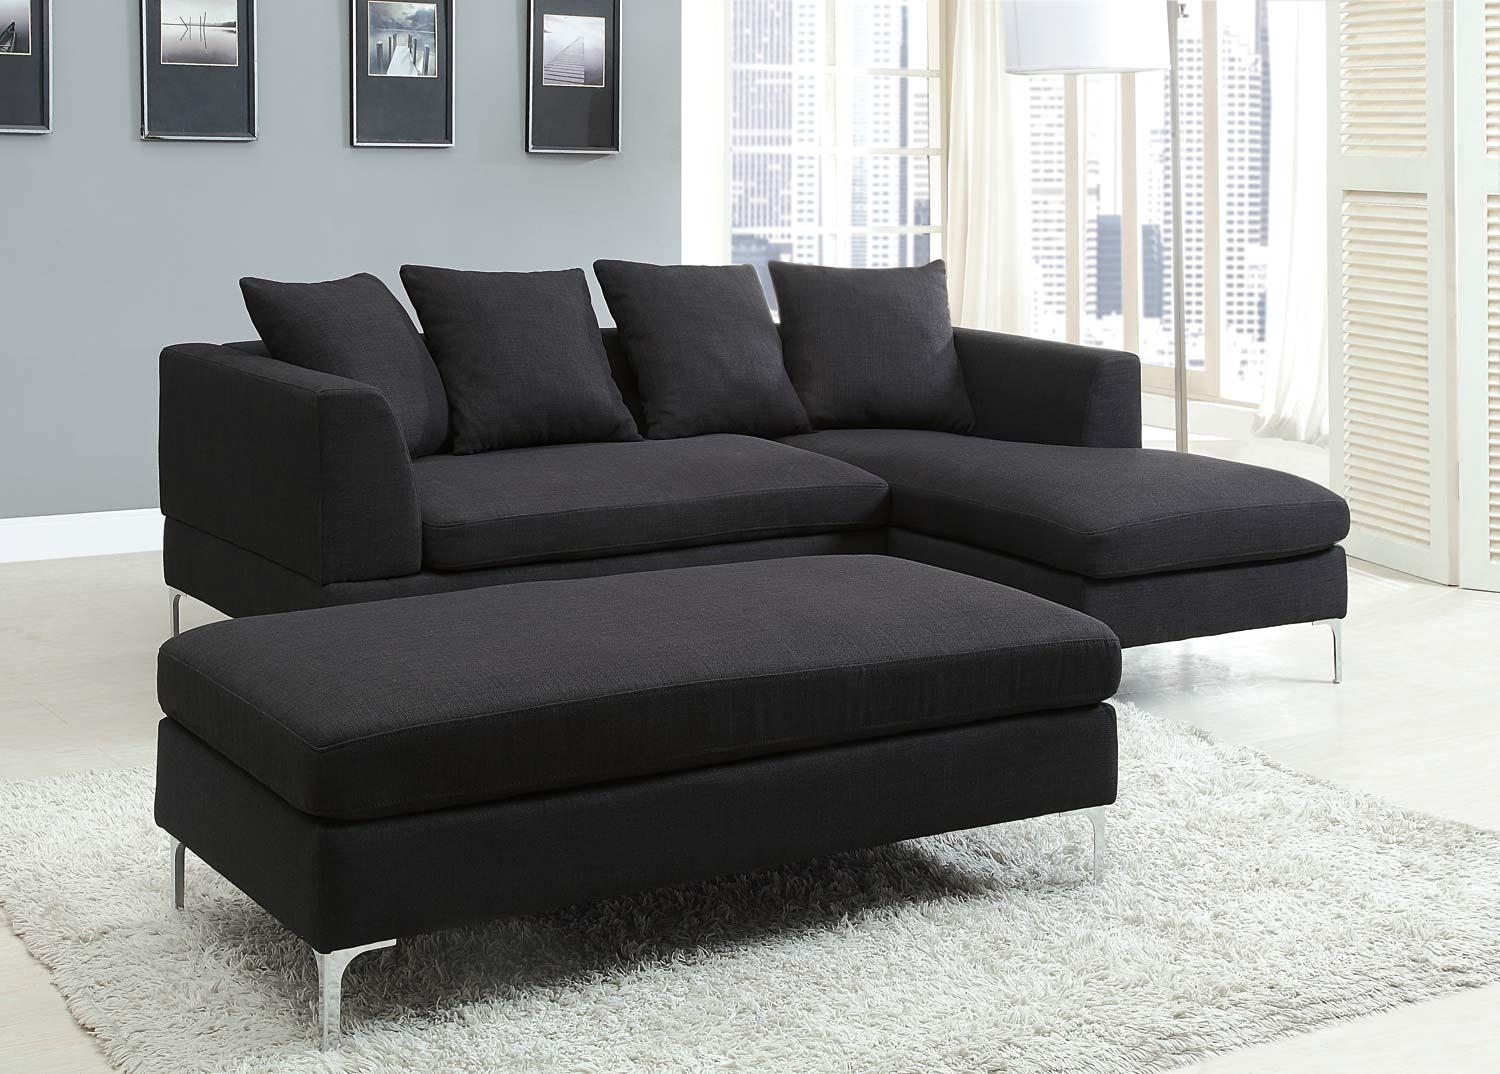 Furniture Home : Attractive Chocolate Brown Sectional Sofa With Intended For Black Microfiber Sectional Sofas (Image 5 of 20)